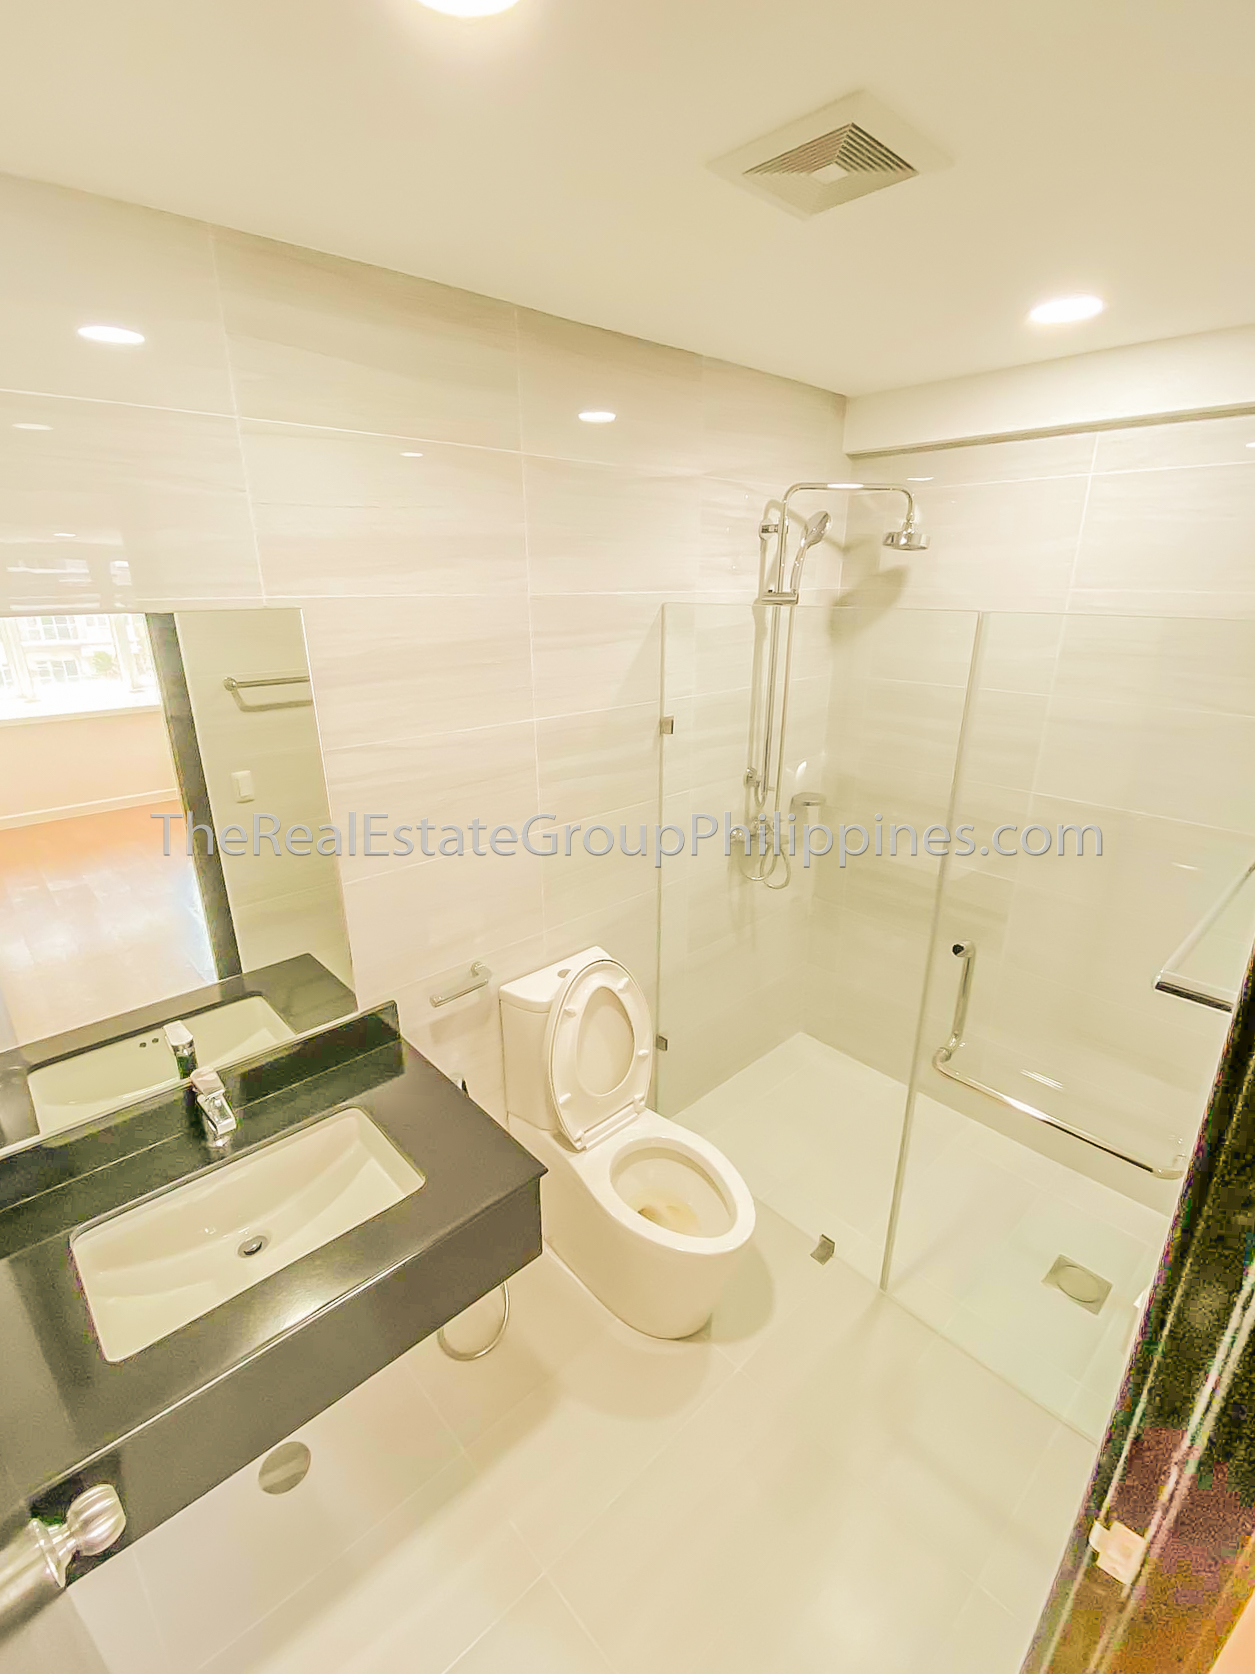 1BR Condo For Rent Lease The Veranda Arca South (12 of 12)